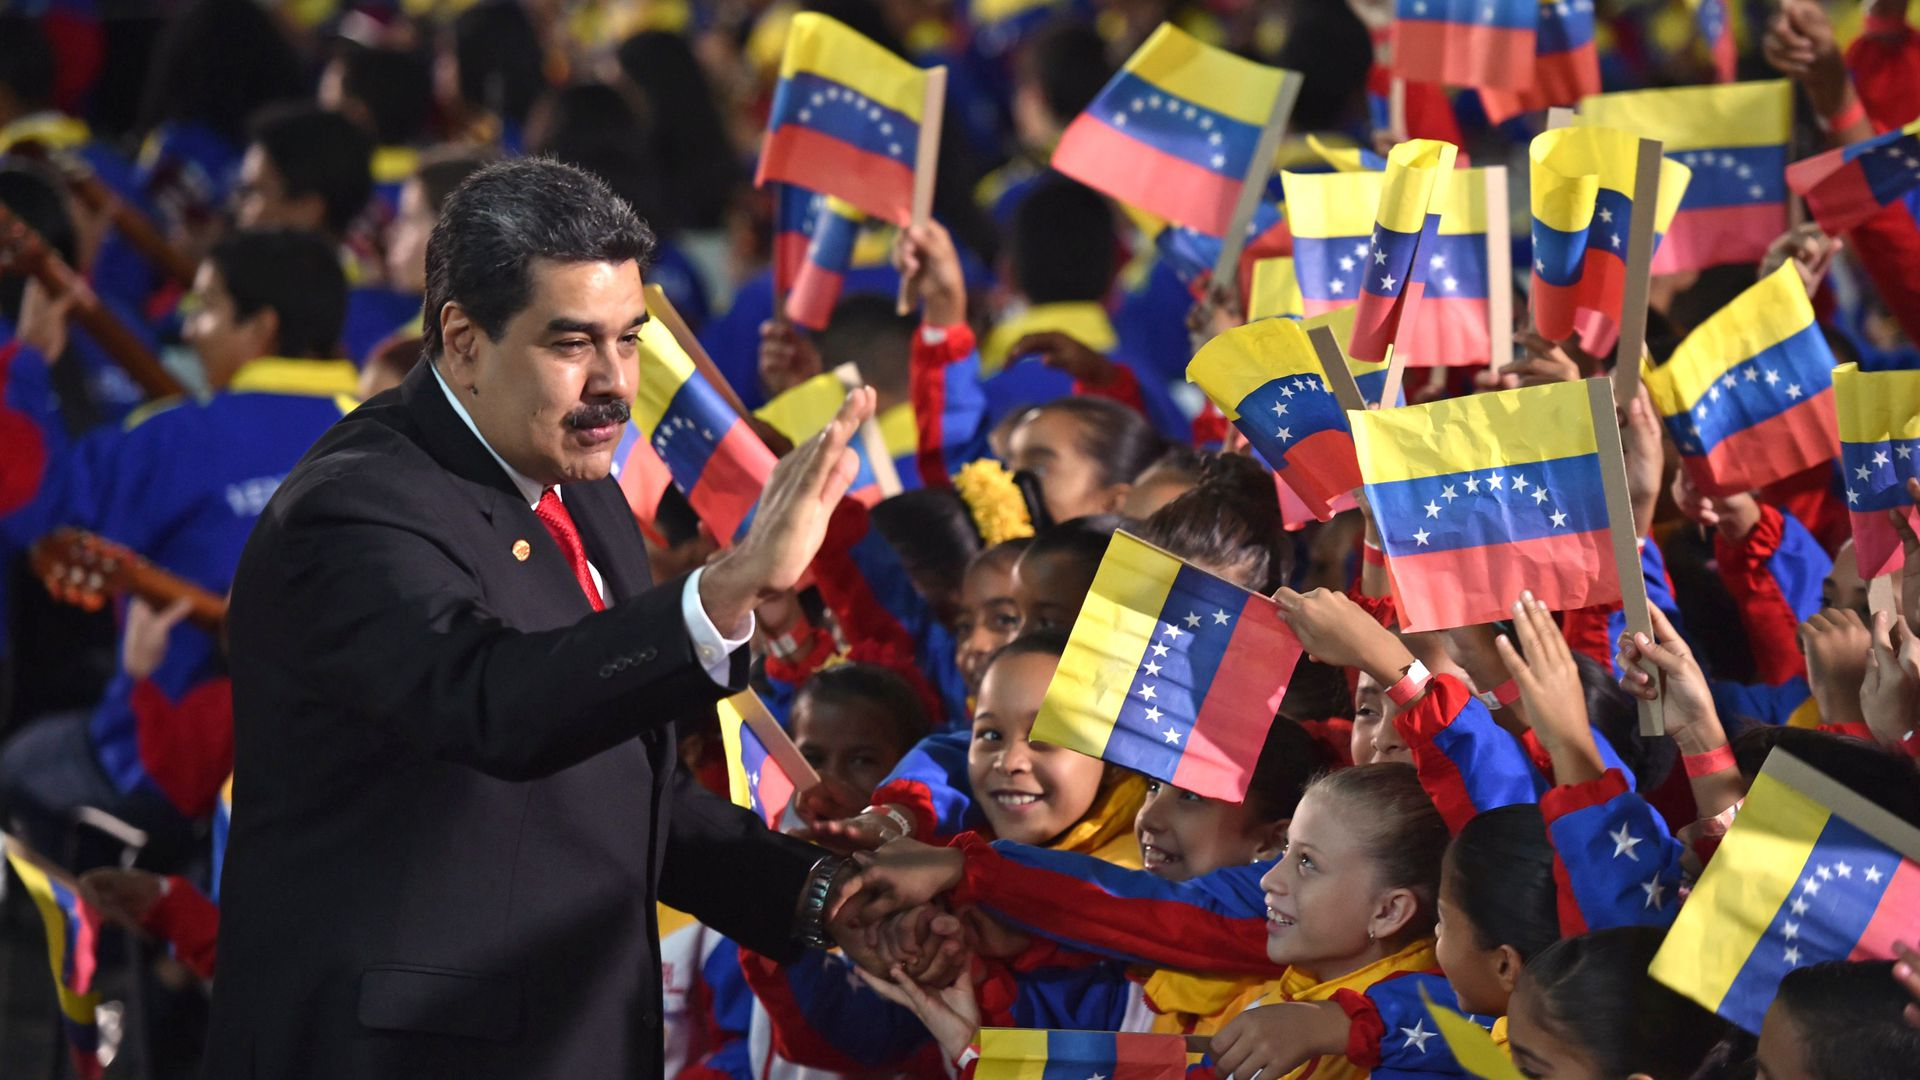 Venezuela's President Nicolas Maduro greets children upon arrival for the inauguration ceremony of his second mandate